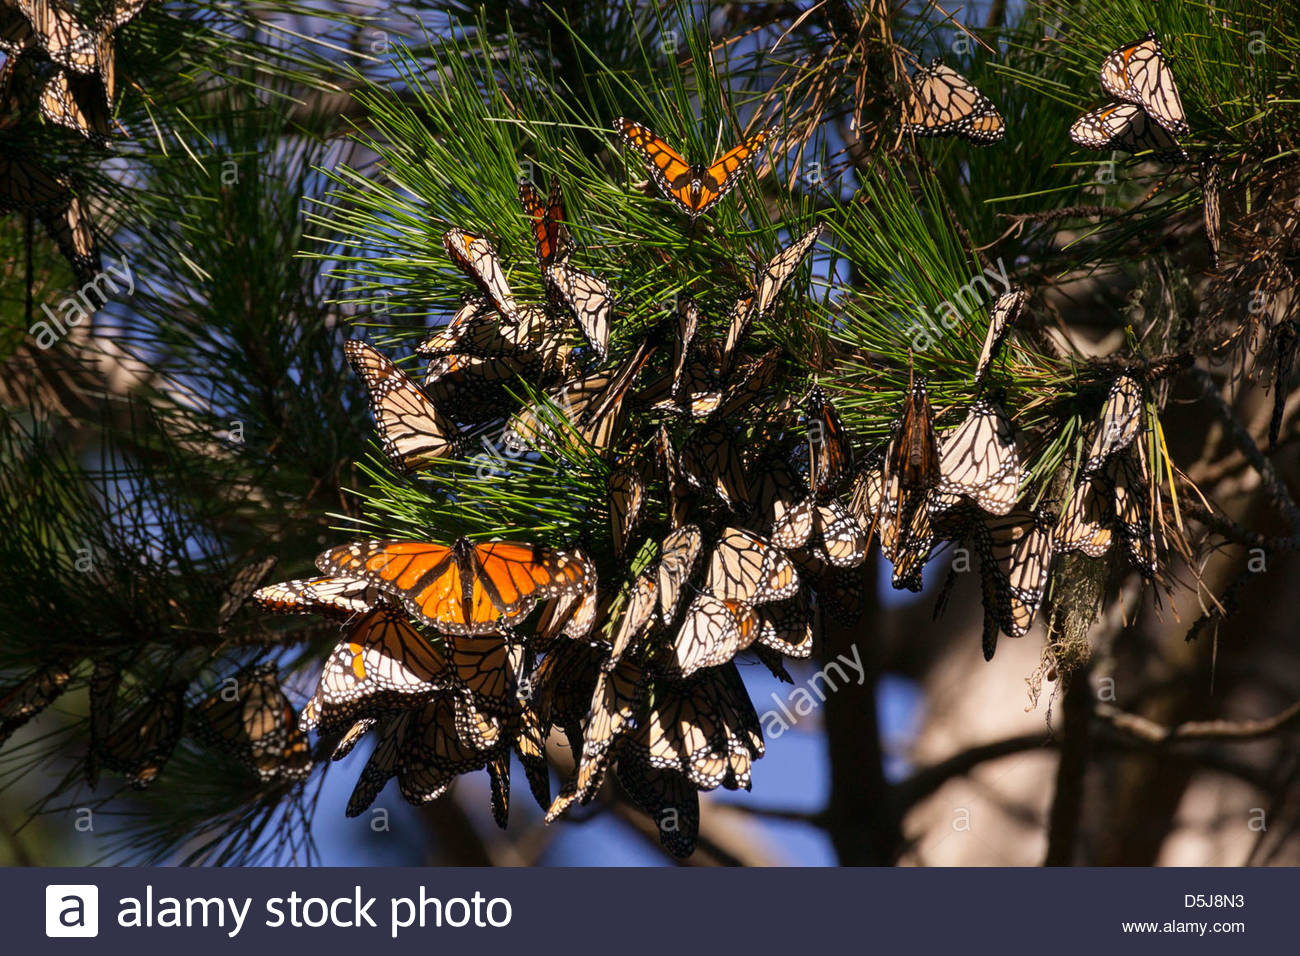 Monarch butterflies (Danaus plexippus) cluster together in Pacific Grove, California. - Stock Image